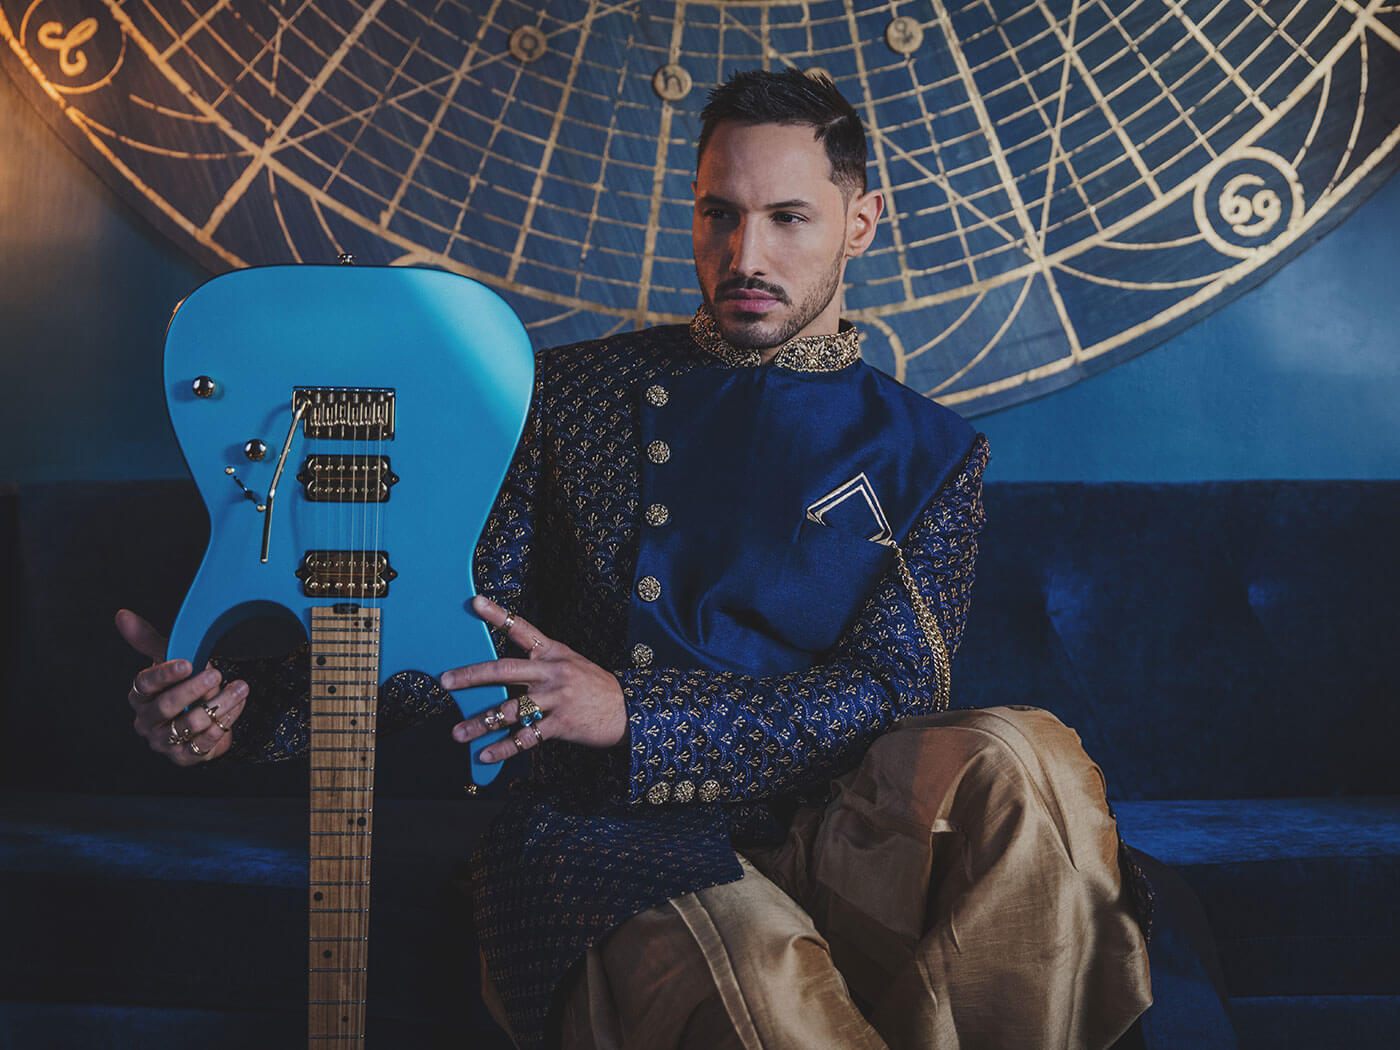 Angel Vivaldi and his new Charvel signature